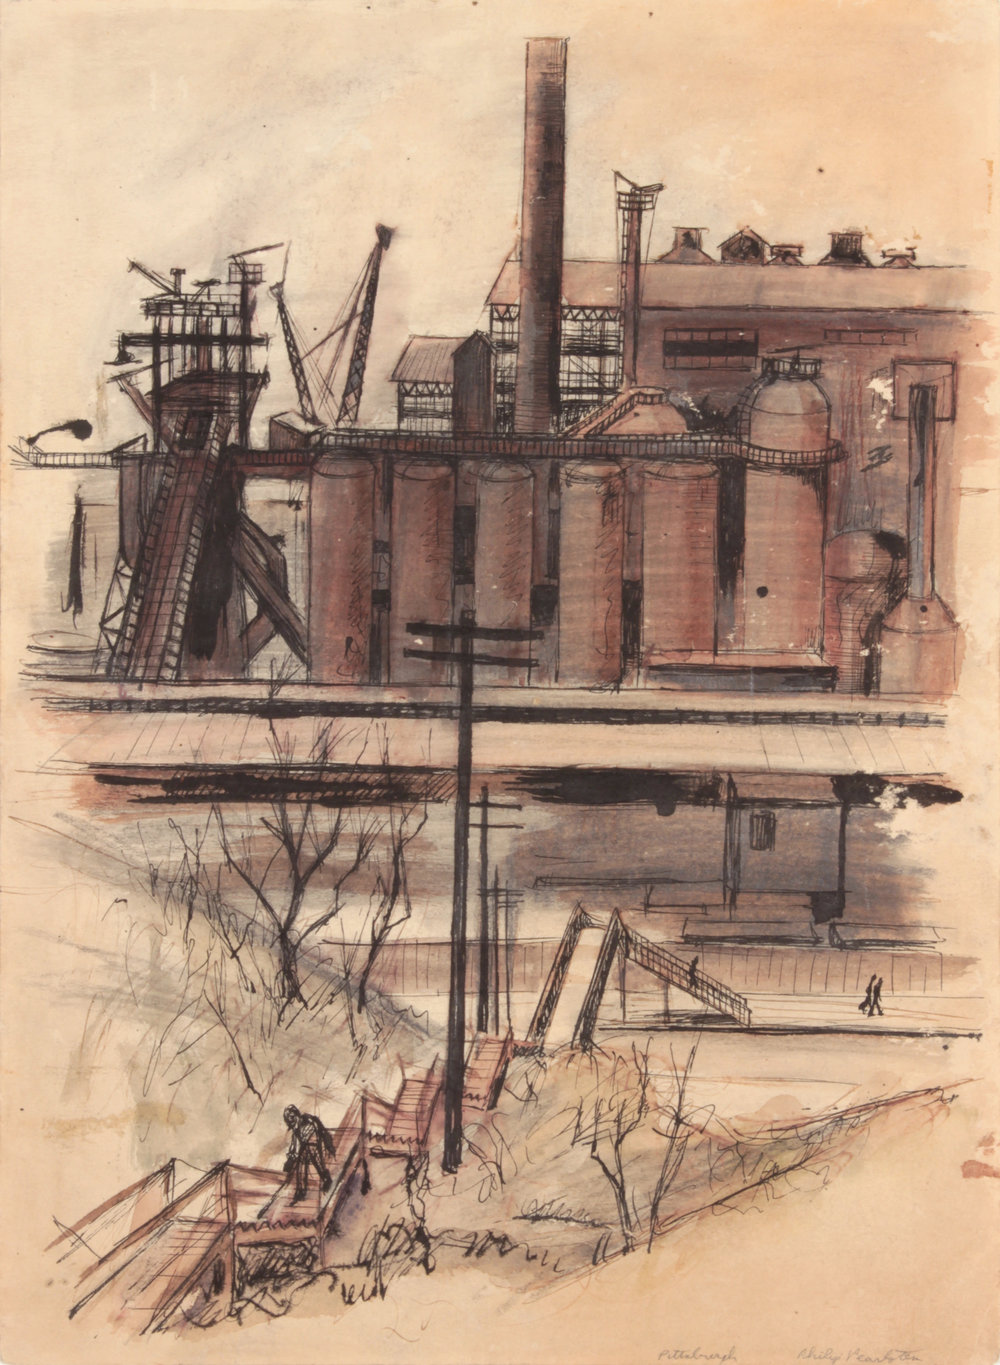 24. 1948-49, Pittsburgh (Factory and Steps Up Hill), Pen and Ink, Graphite and Wash on Paper, 13.625x9.875, PPS 489.JPG